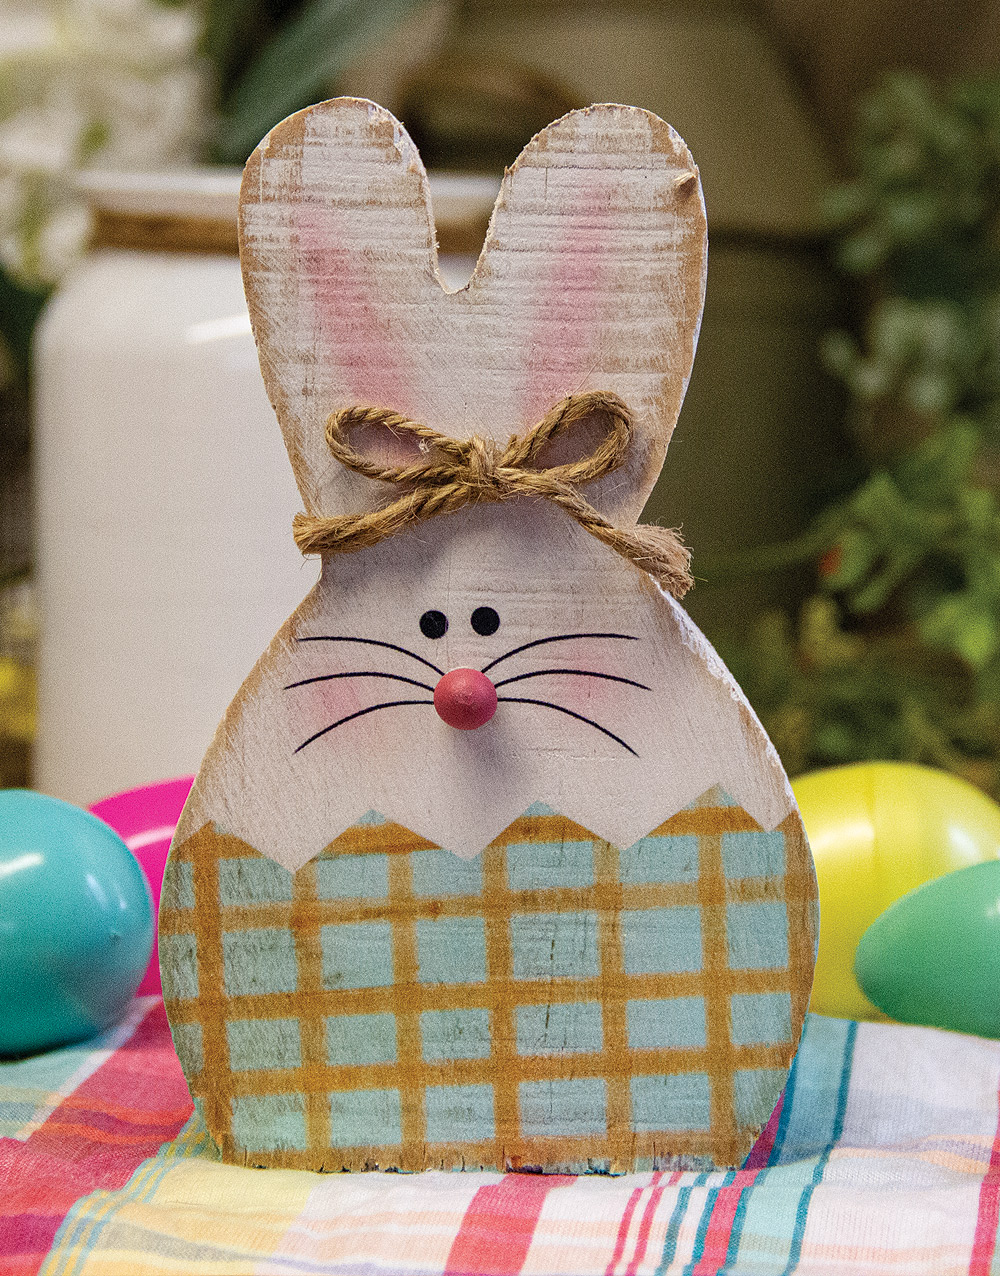 Pastel Easter Bunny Wooden Figurines